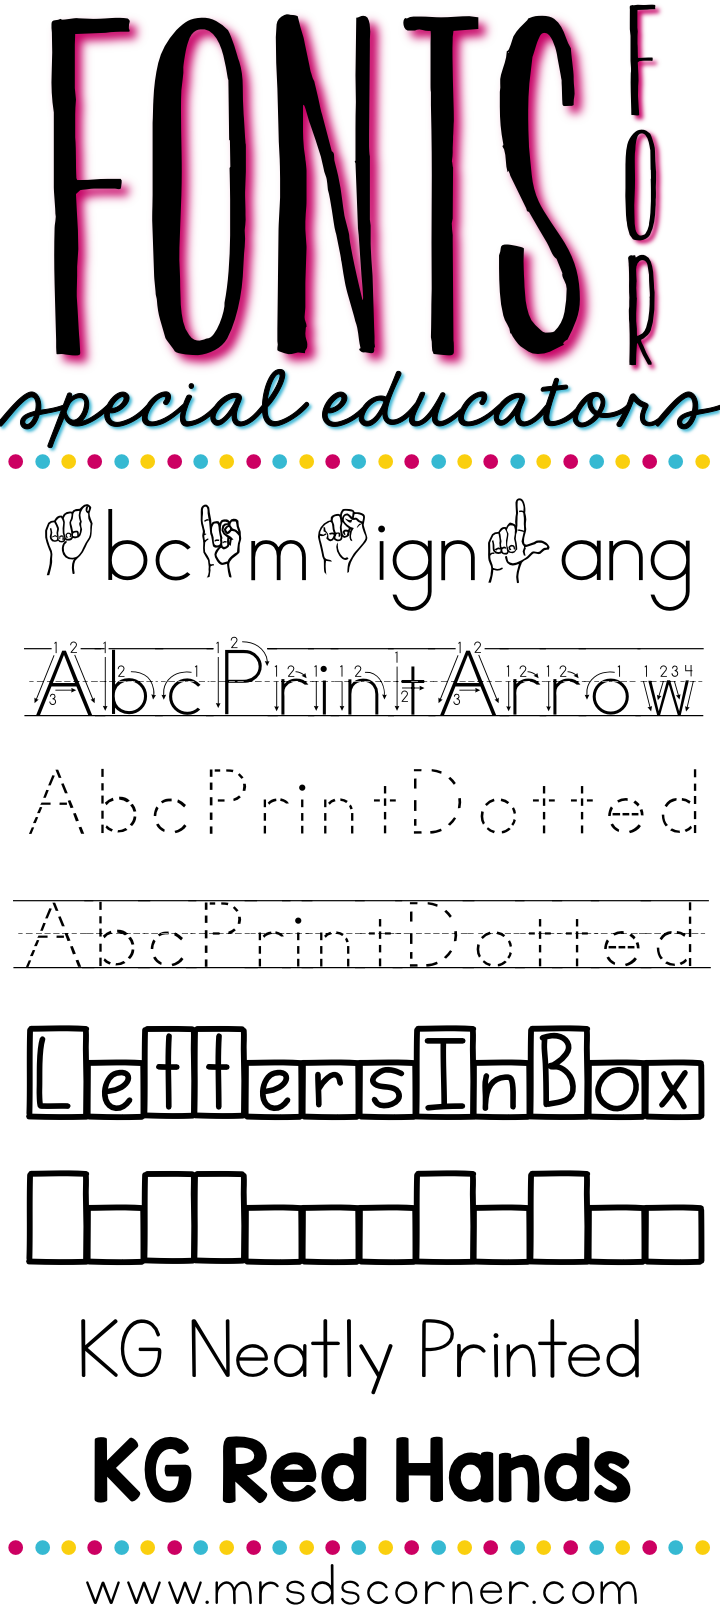 Fonts for Special Educators | 2016 SCHOOL MUST Do's | Educación